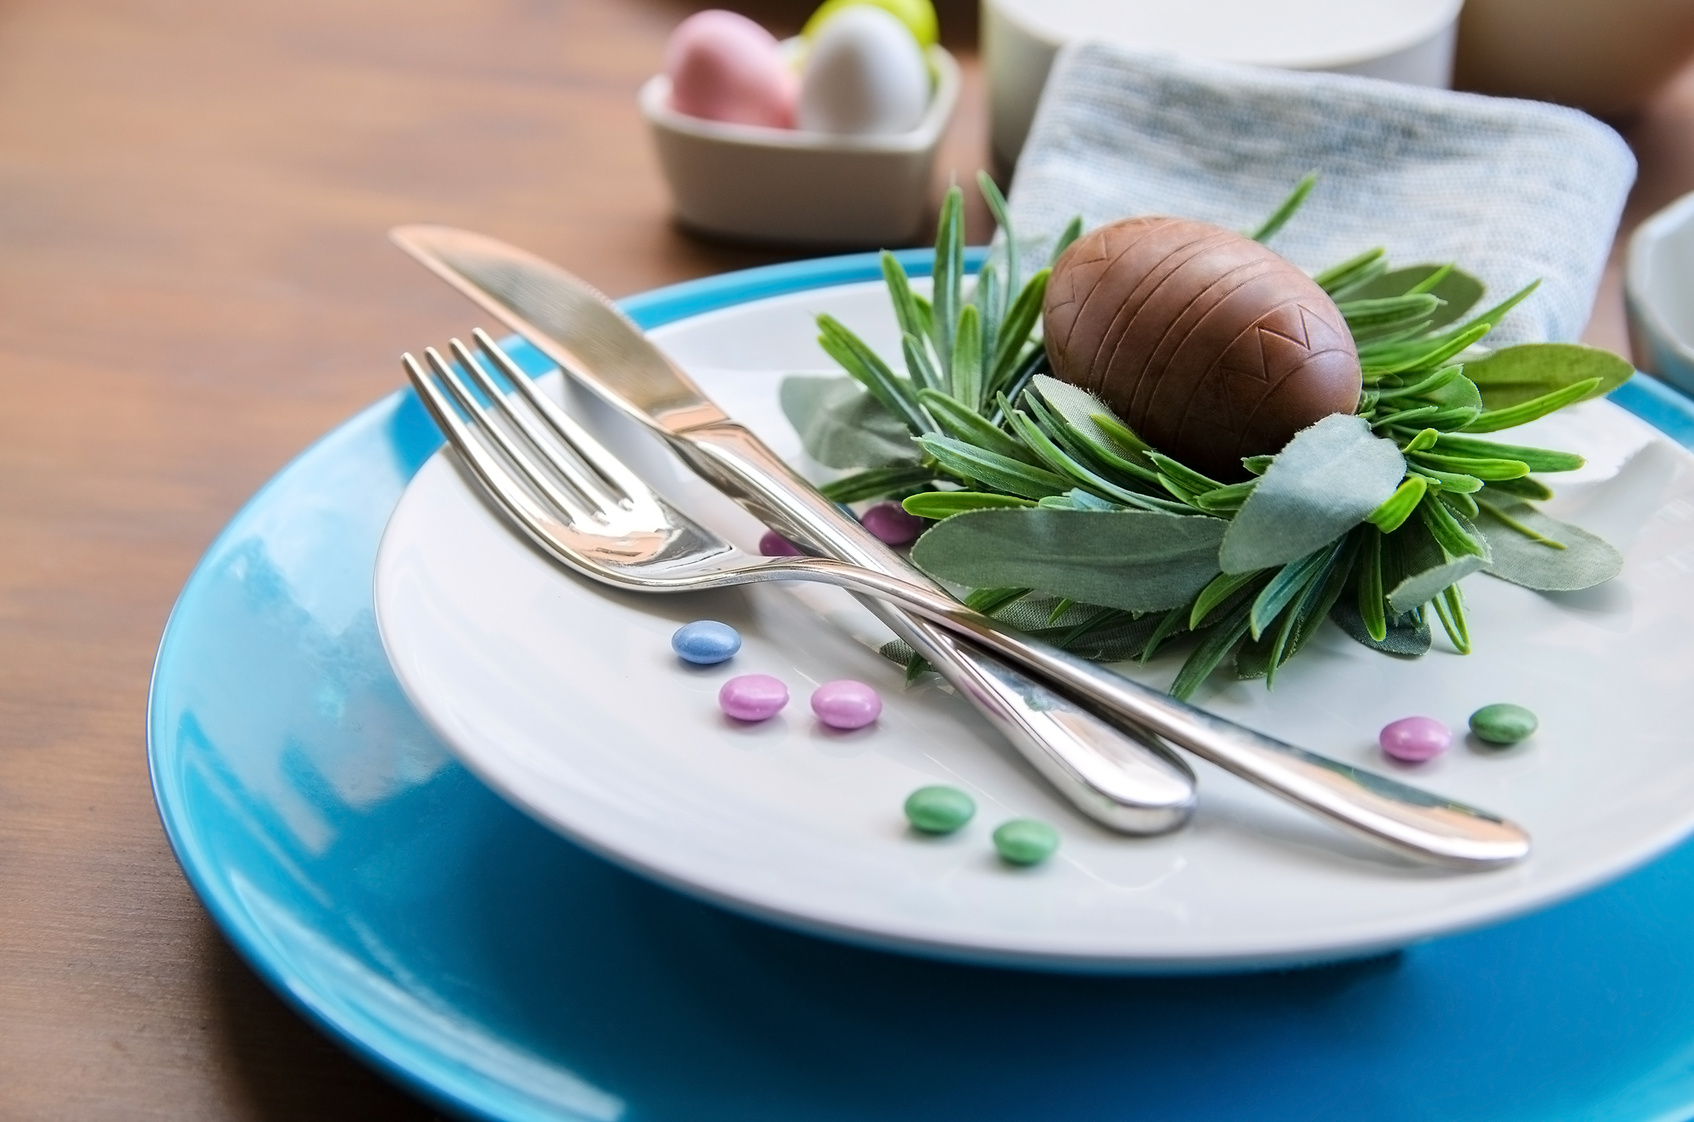 Beautiful Easter table settings, white and blue plate, silver cutlery, decorative nest with chocolate egg and colorful candy  on wooden background. Happy Easter concept.